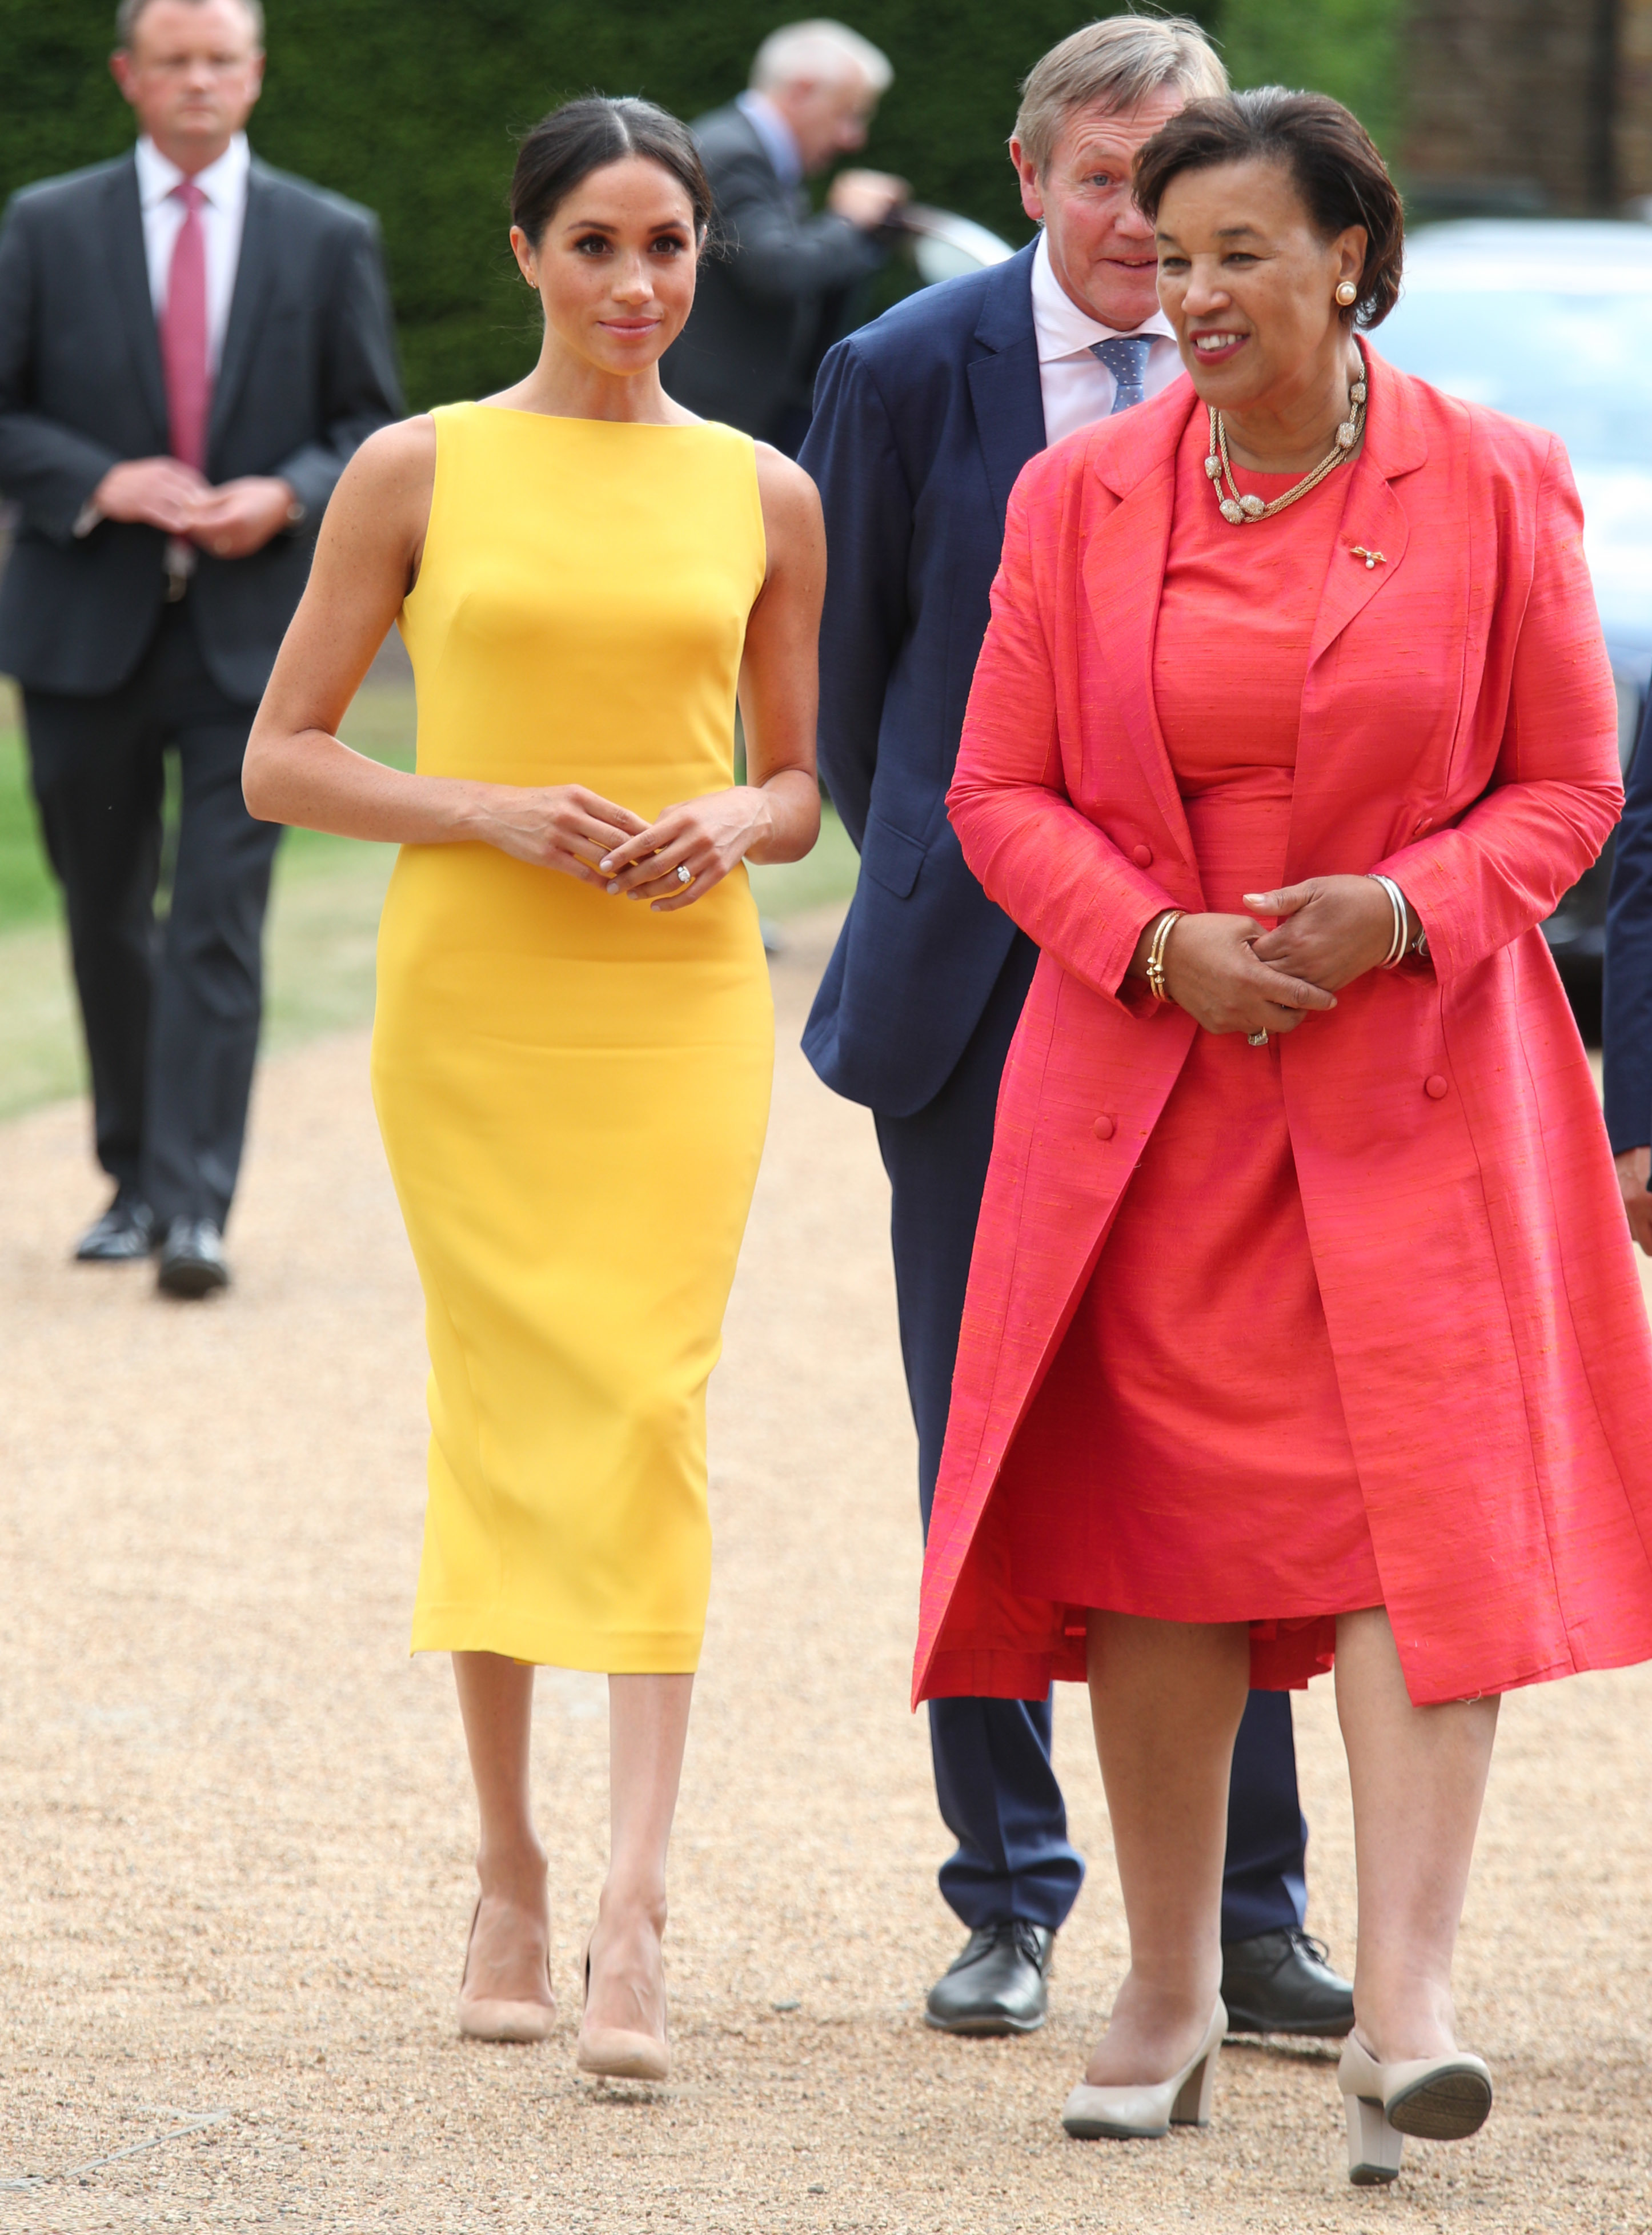 The Duchess of Sussex, accompanied by Commonwealth secretary general Baroness Scotland arrive to attend the Your Commonwealth Youth Challenge reception at Marlborough House in London.